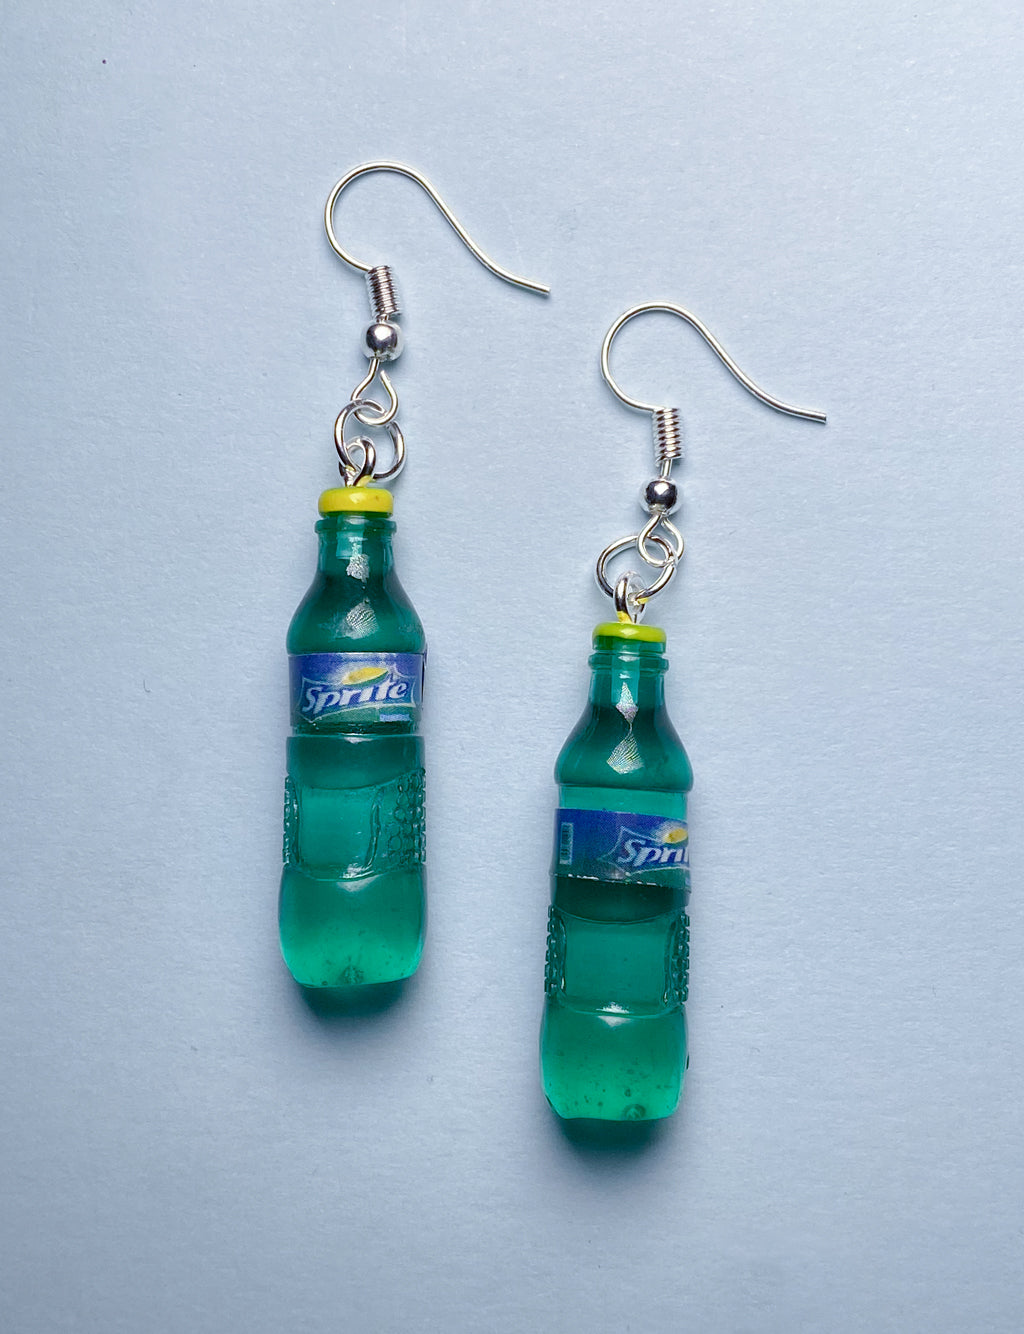 SPRITE BOTTLE EARRINGS